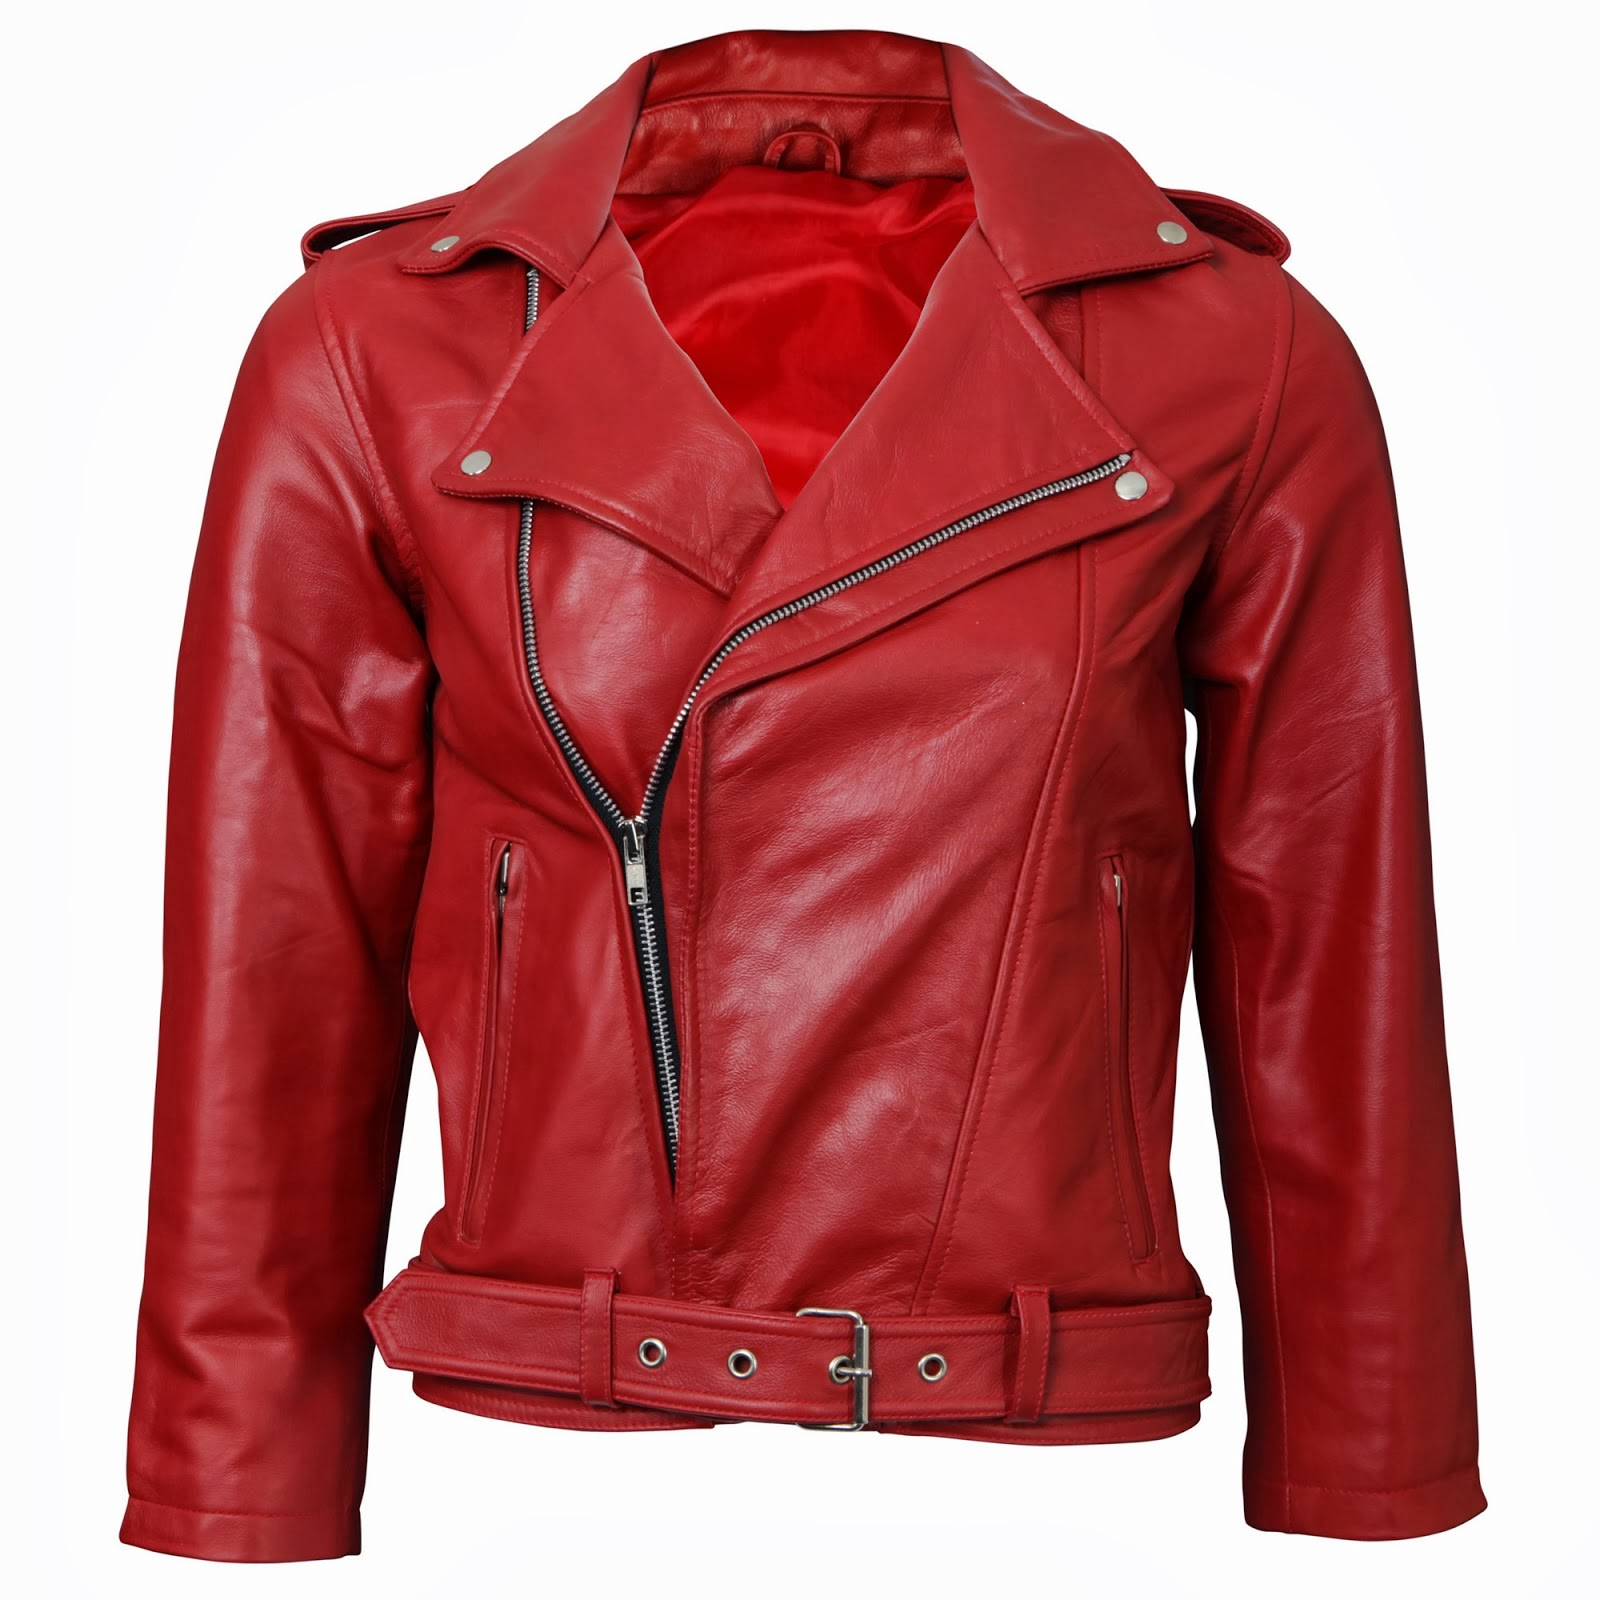 Fashion Leather Jackets December 2013